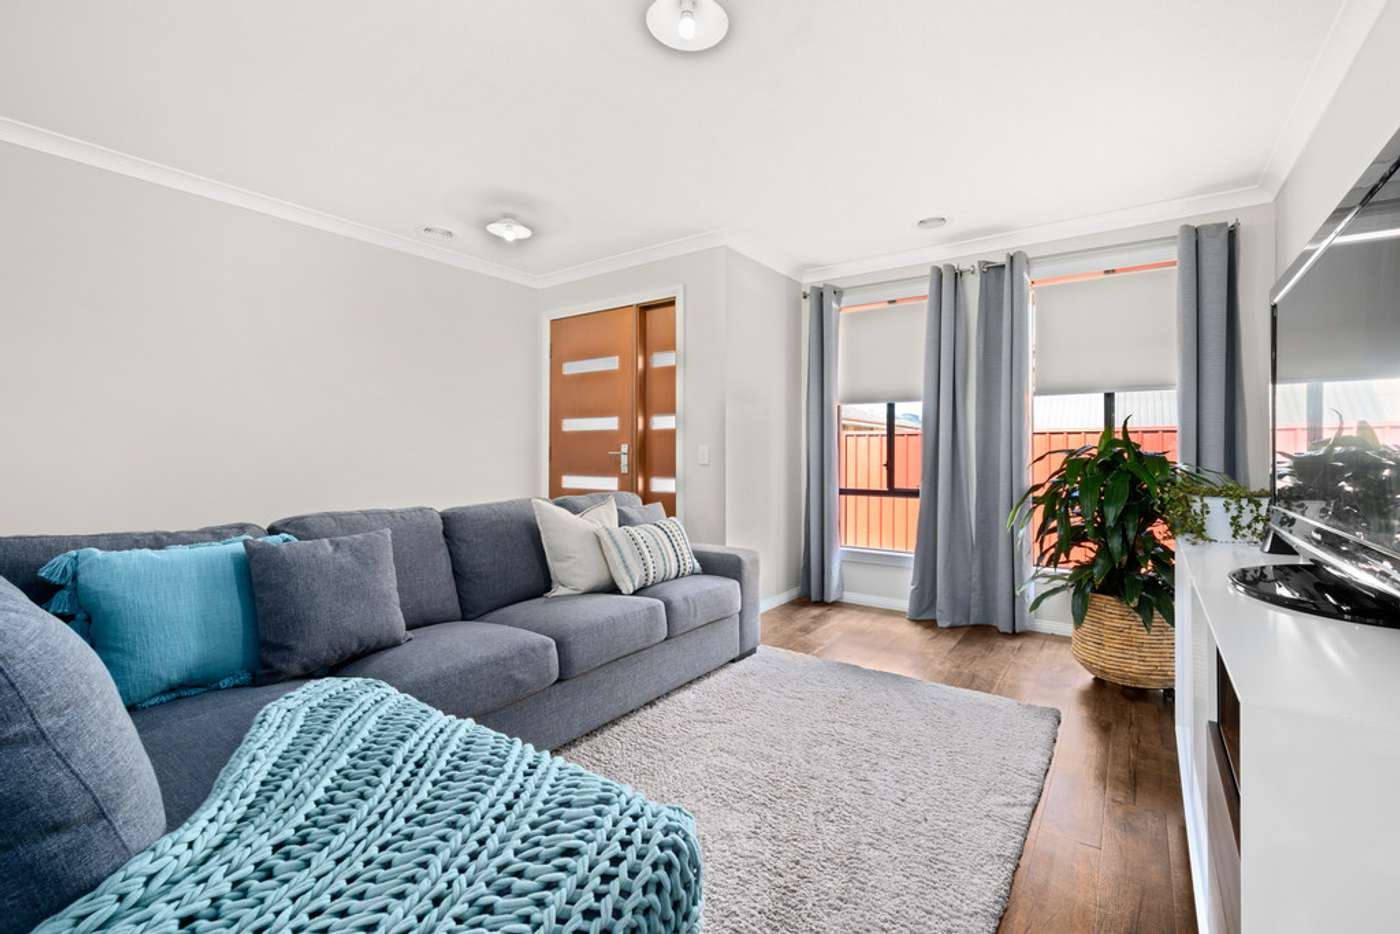 Fifth view of Homely house listing, 2/119 Phillips Street, Wodonga VIC 3690